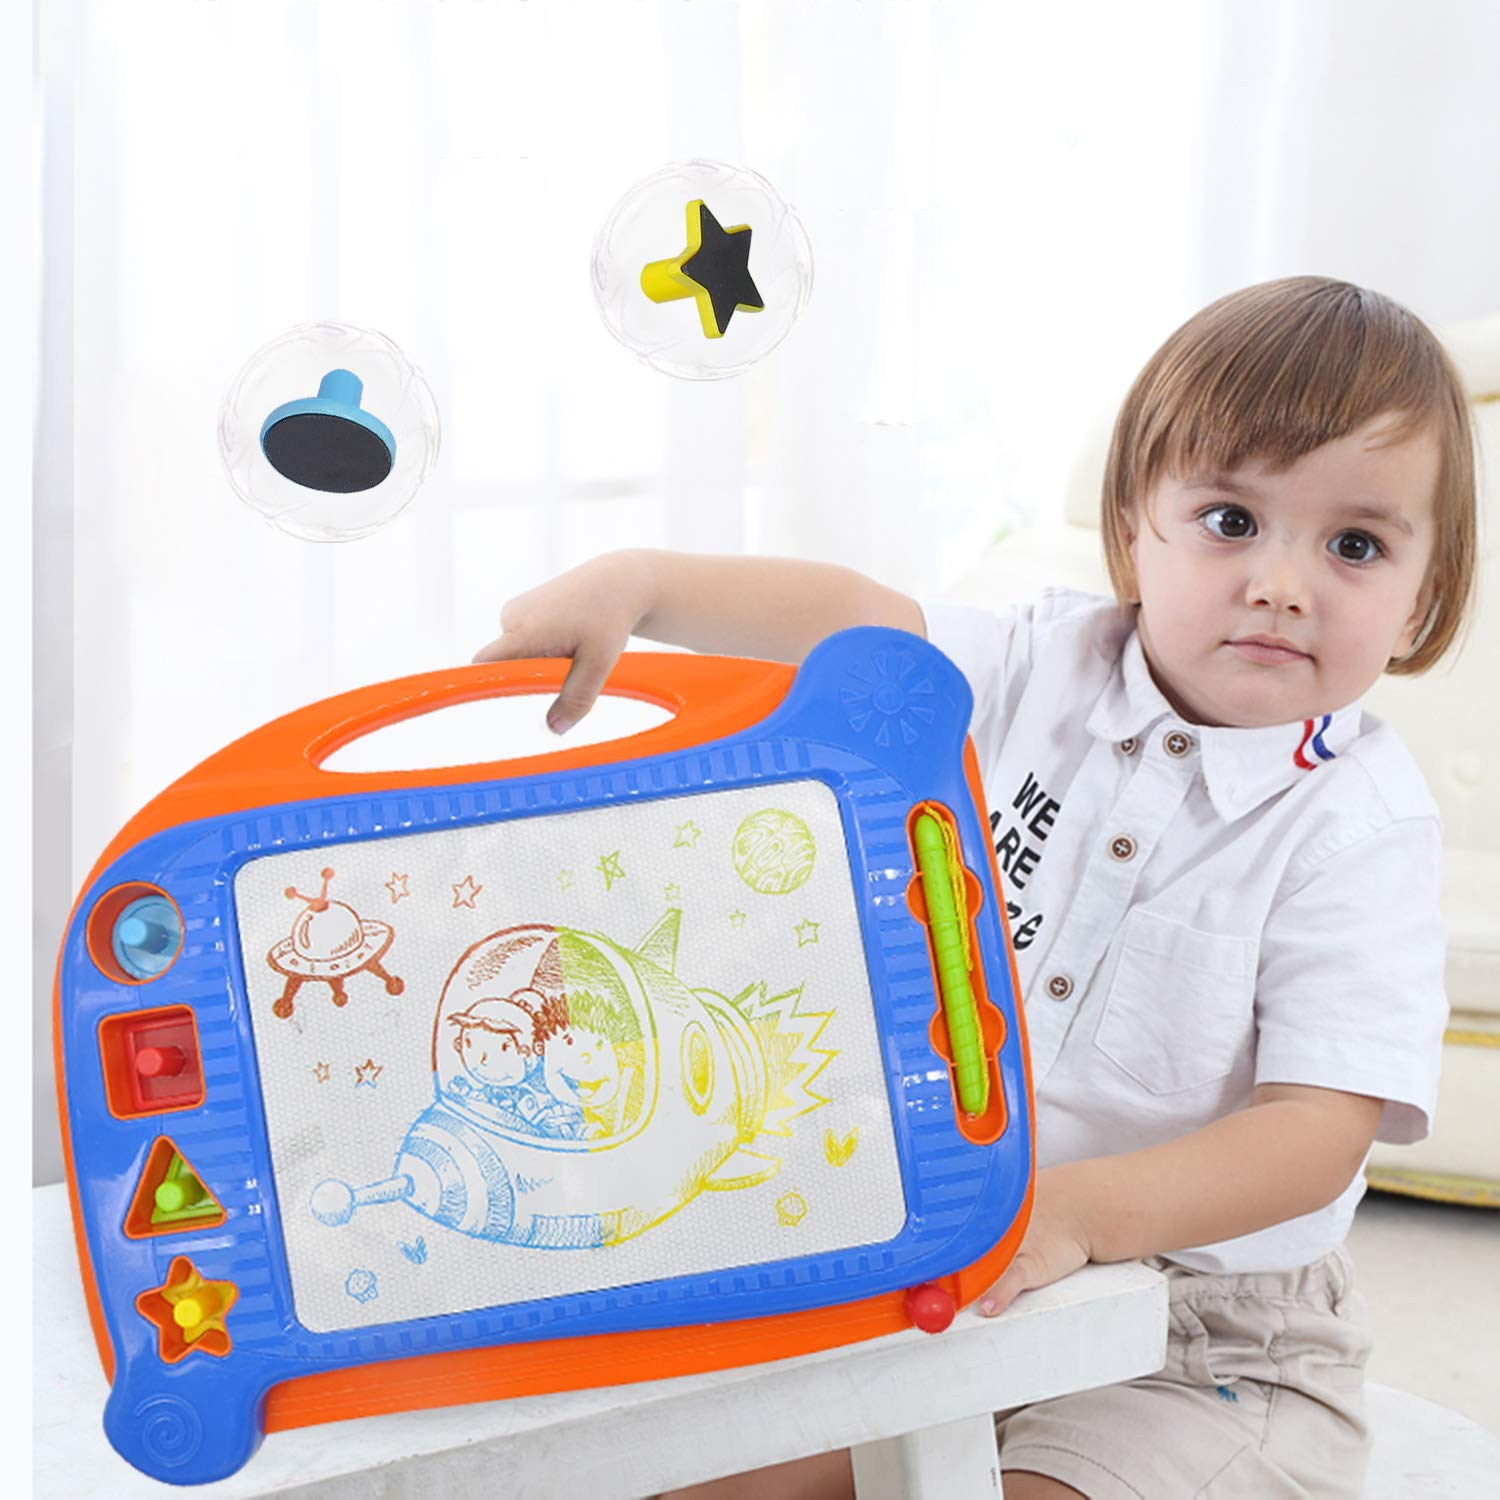 Yanqueens Magnetic Drawing Board for Kids Perfect Educational Toys for Beginner 2 Magna Doodle Board with Erasable Sketching and Daily Use Painting Great for Writing